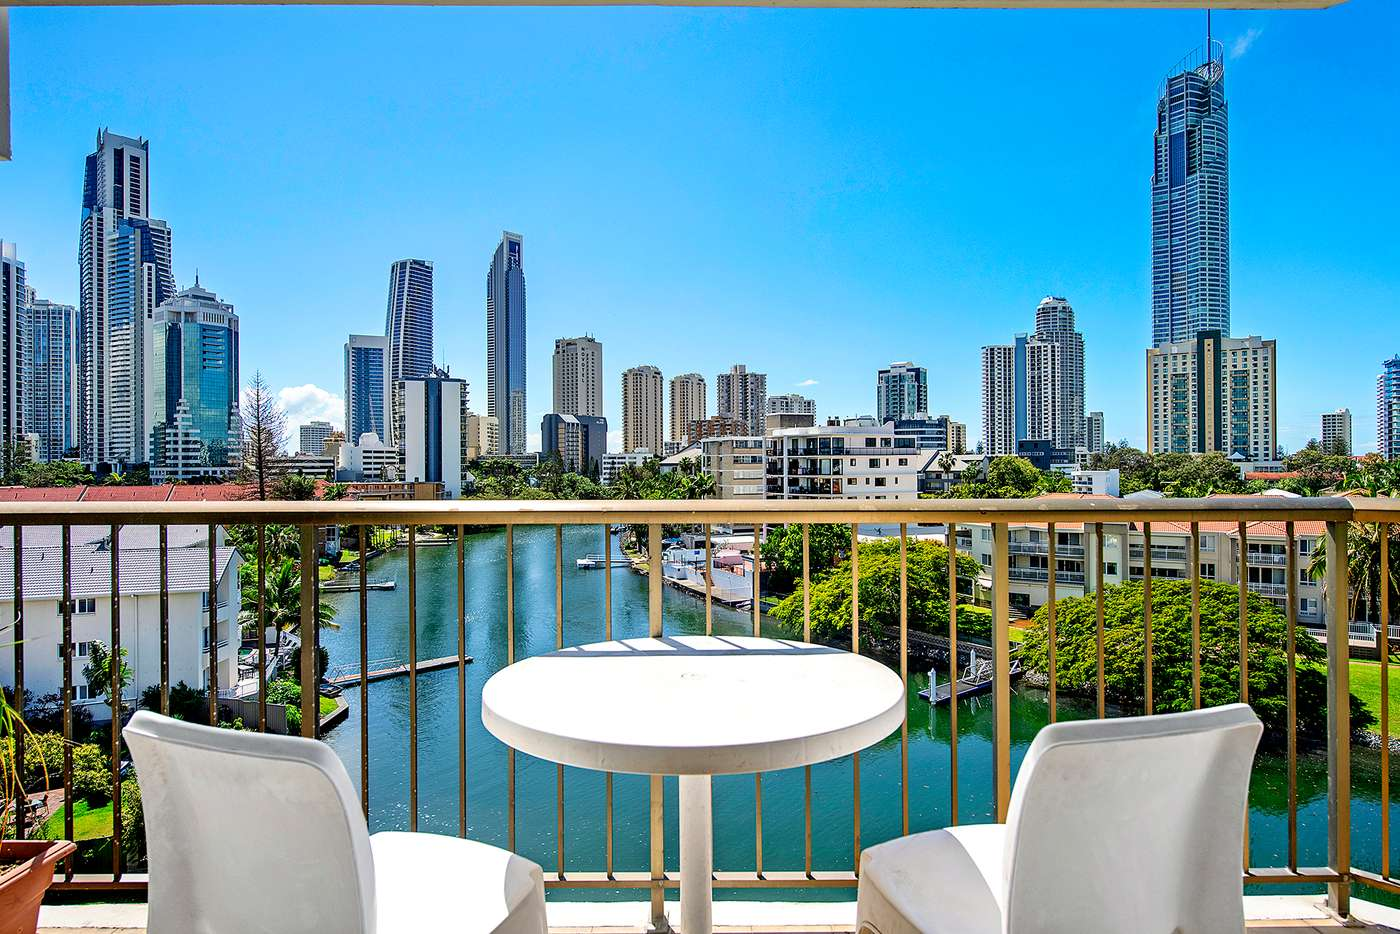 Main view of Homely apartment listing, 503/21 Peninsular Drive, Surfers Paradise QLD 4217